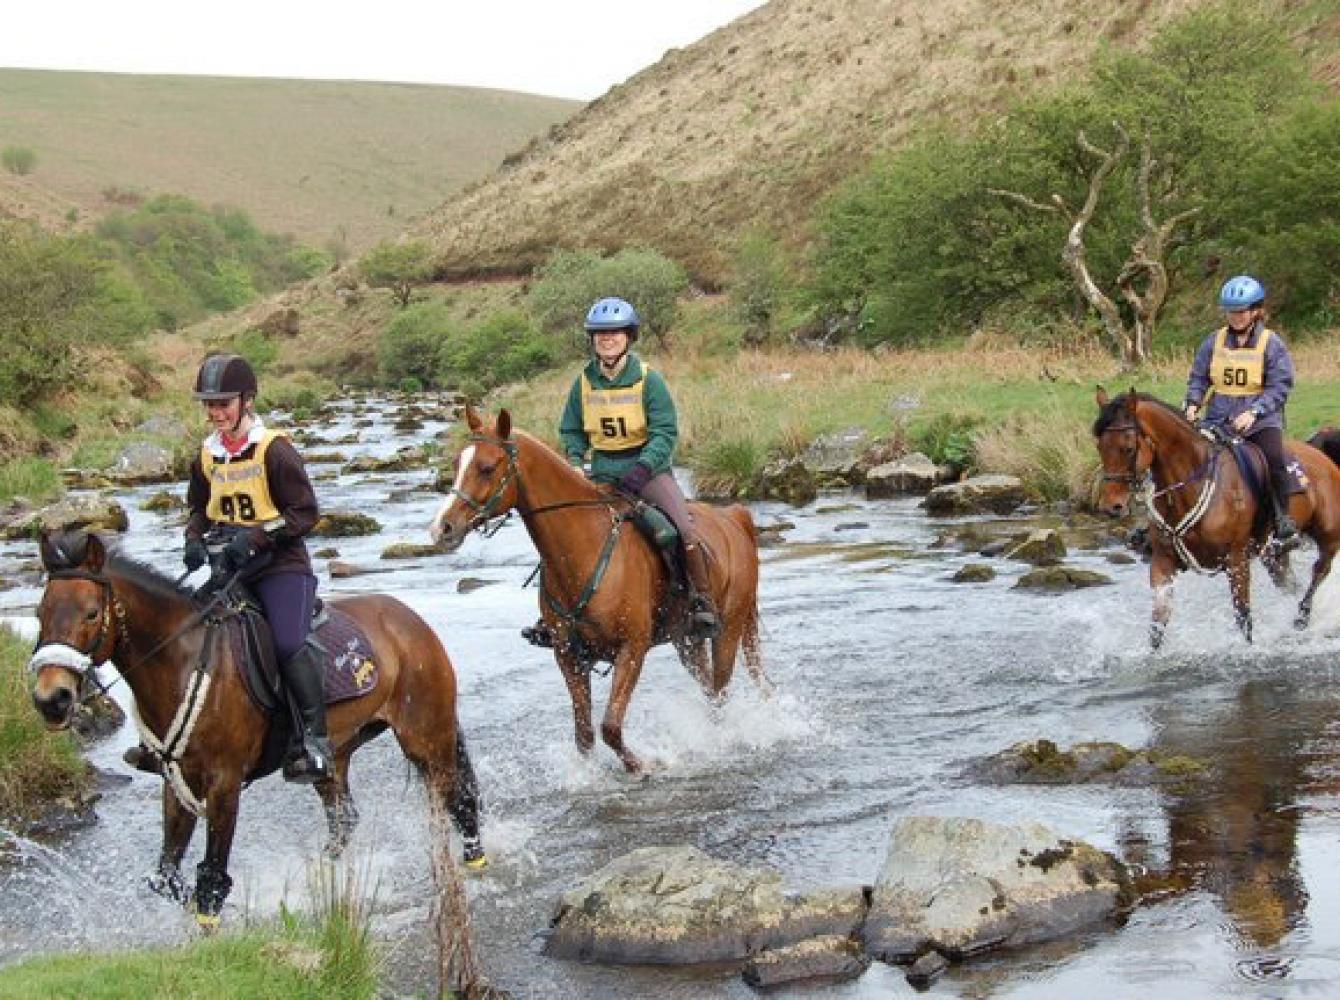 Passing a stream in an endurance contest